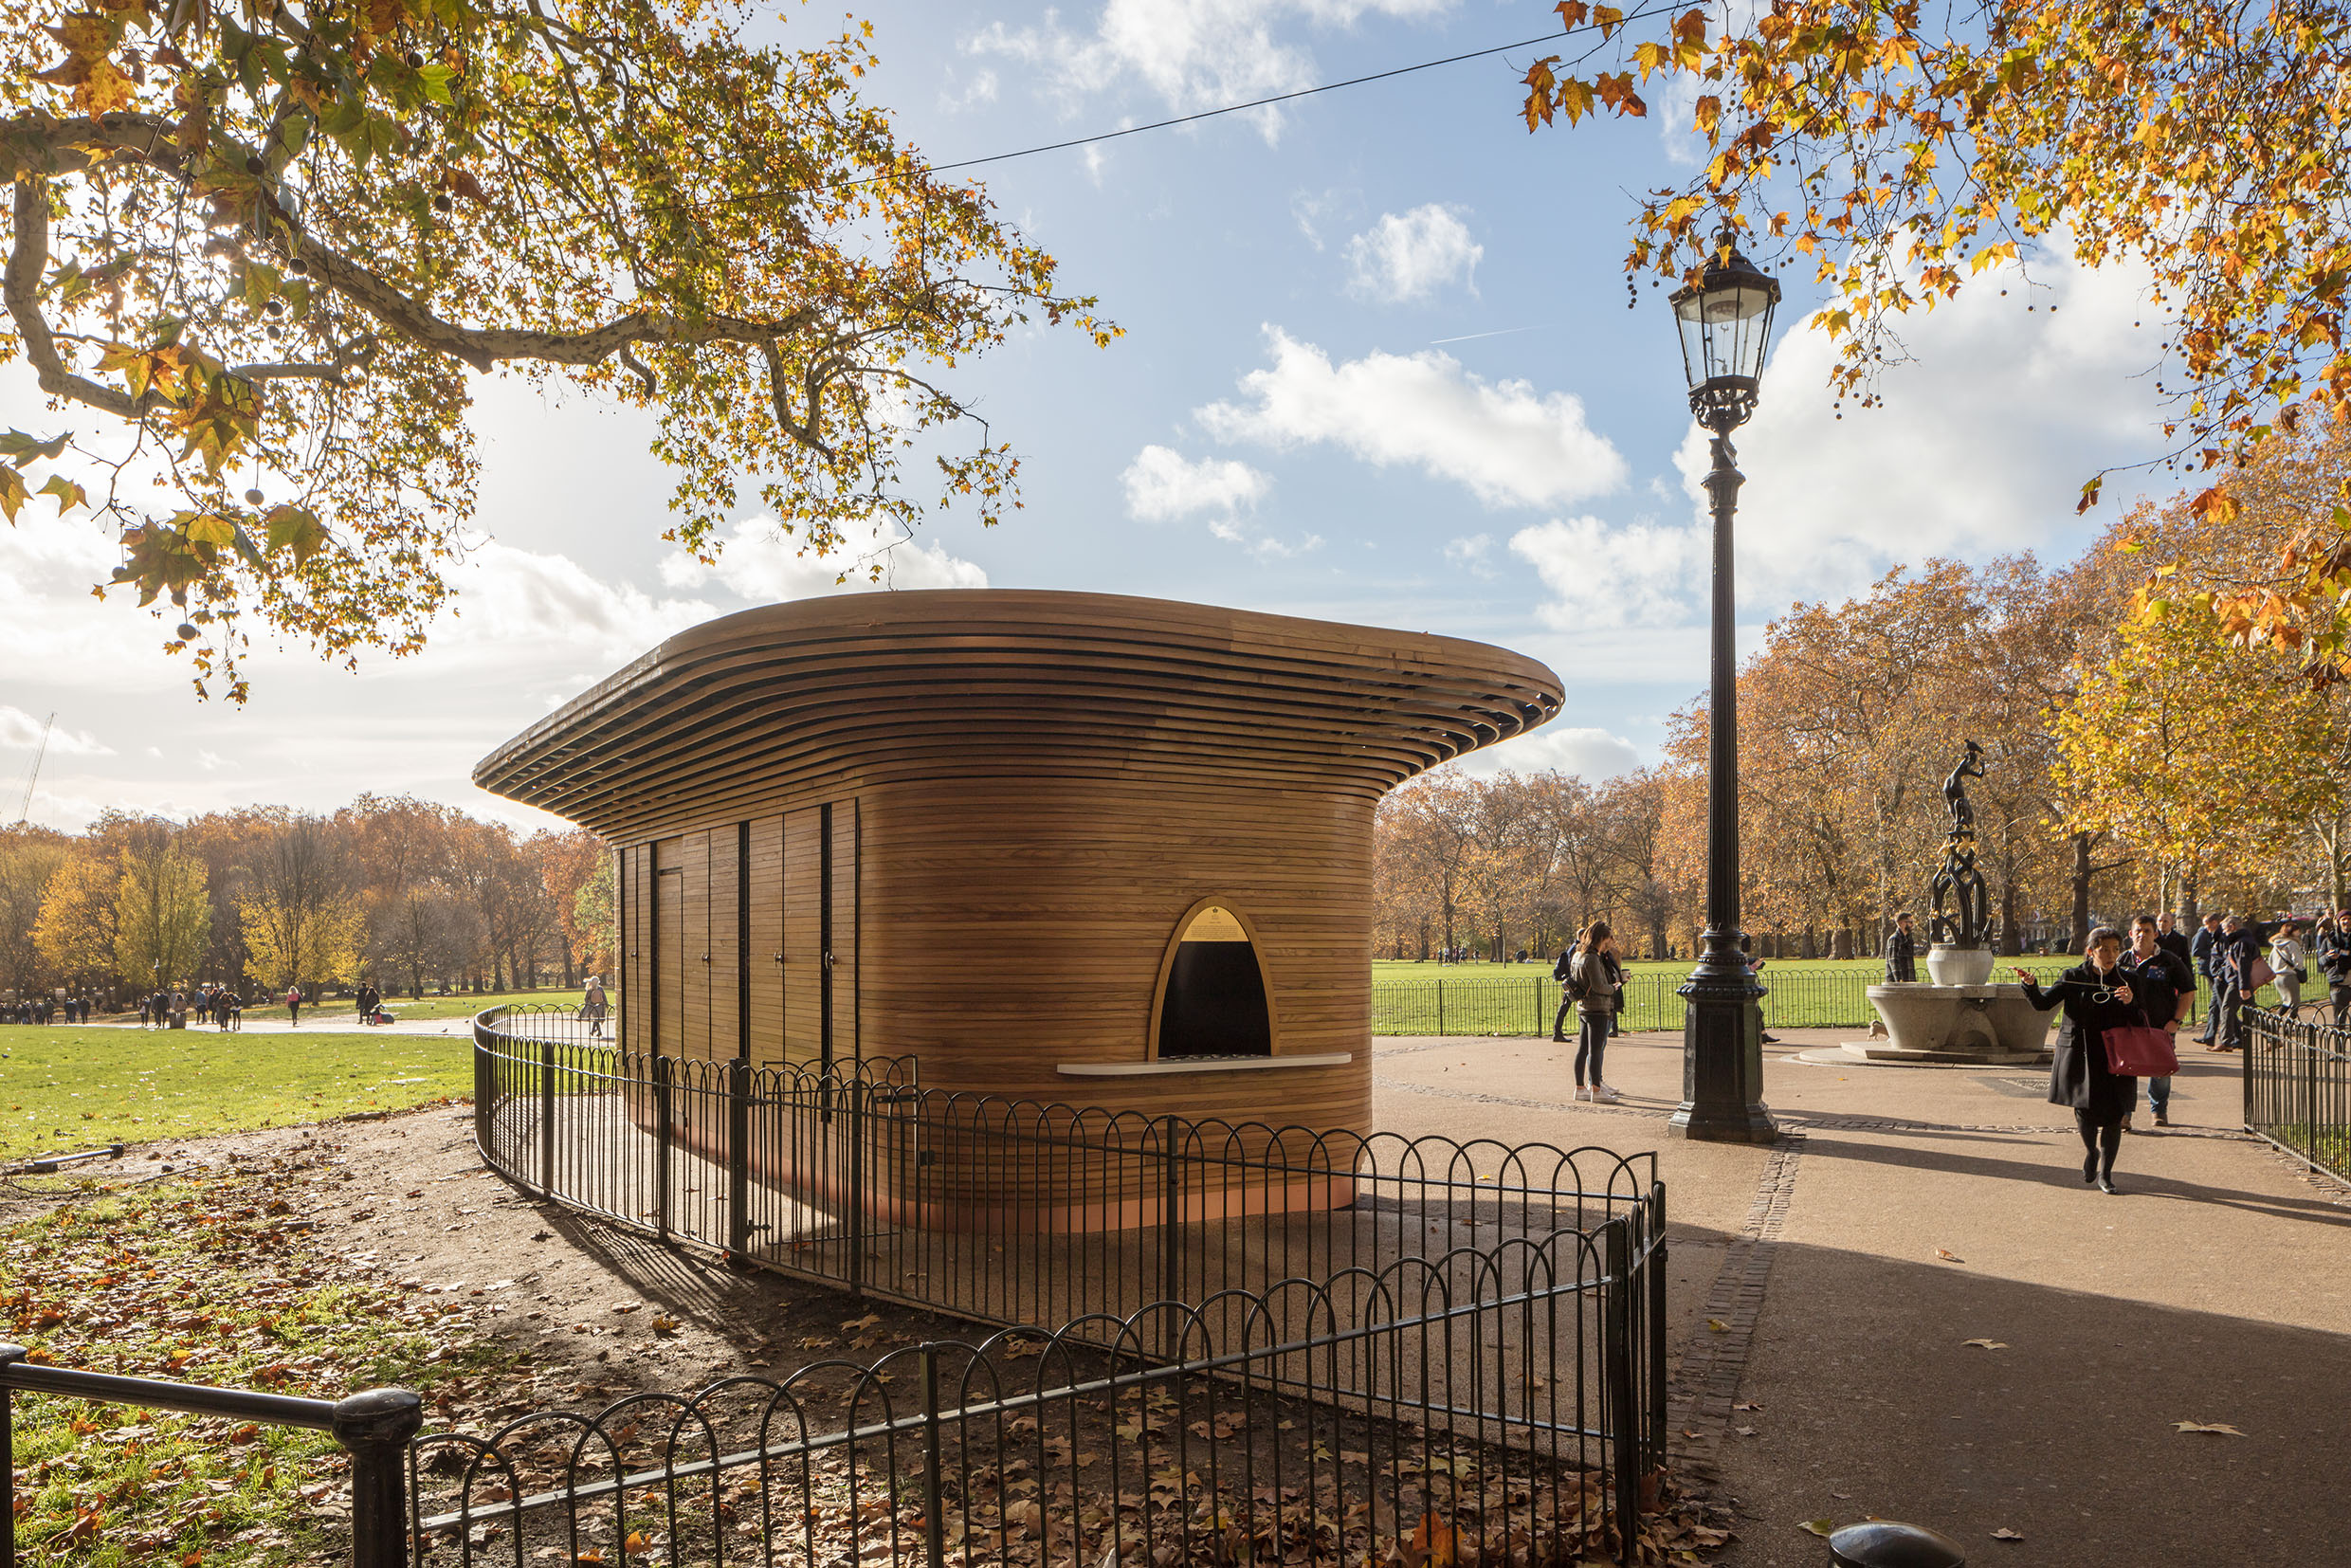 Mizzi Studio, Ritz Corner kiosk, Green Park, London, The Royal Parks